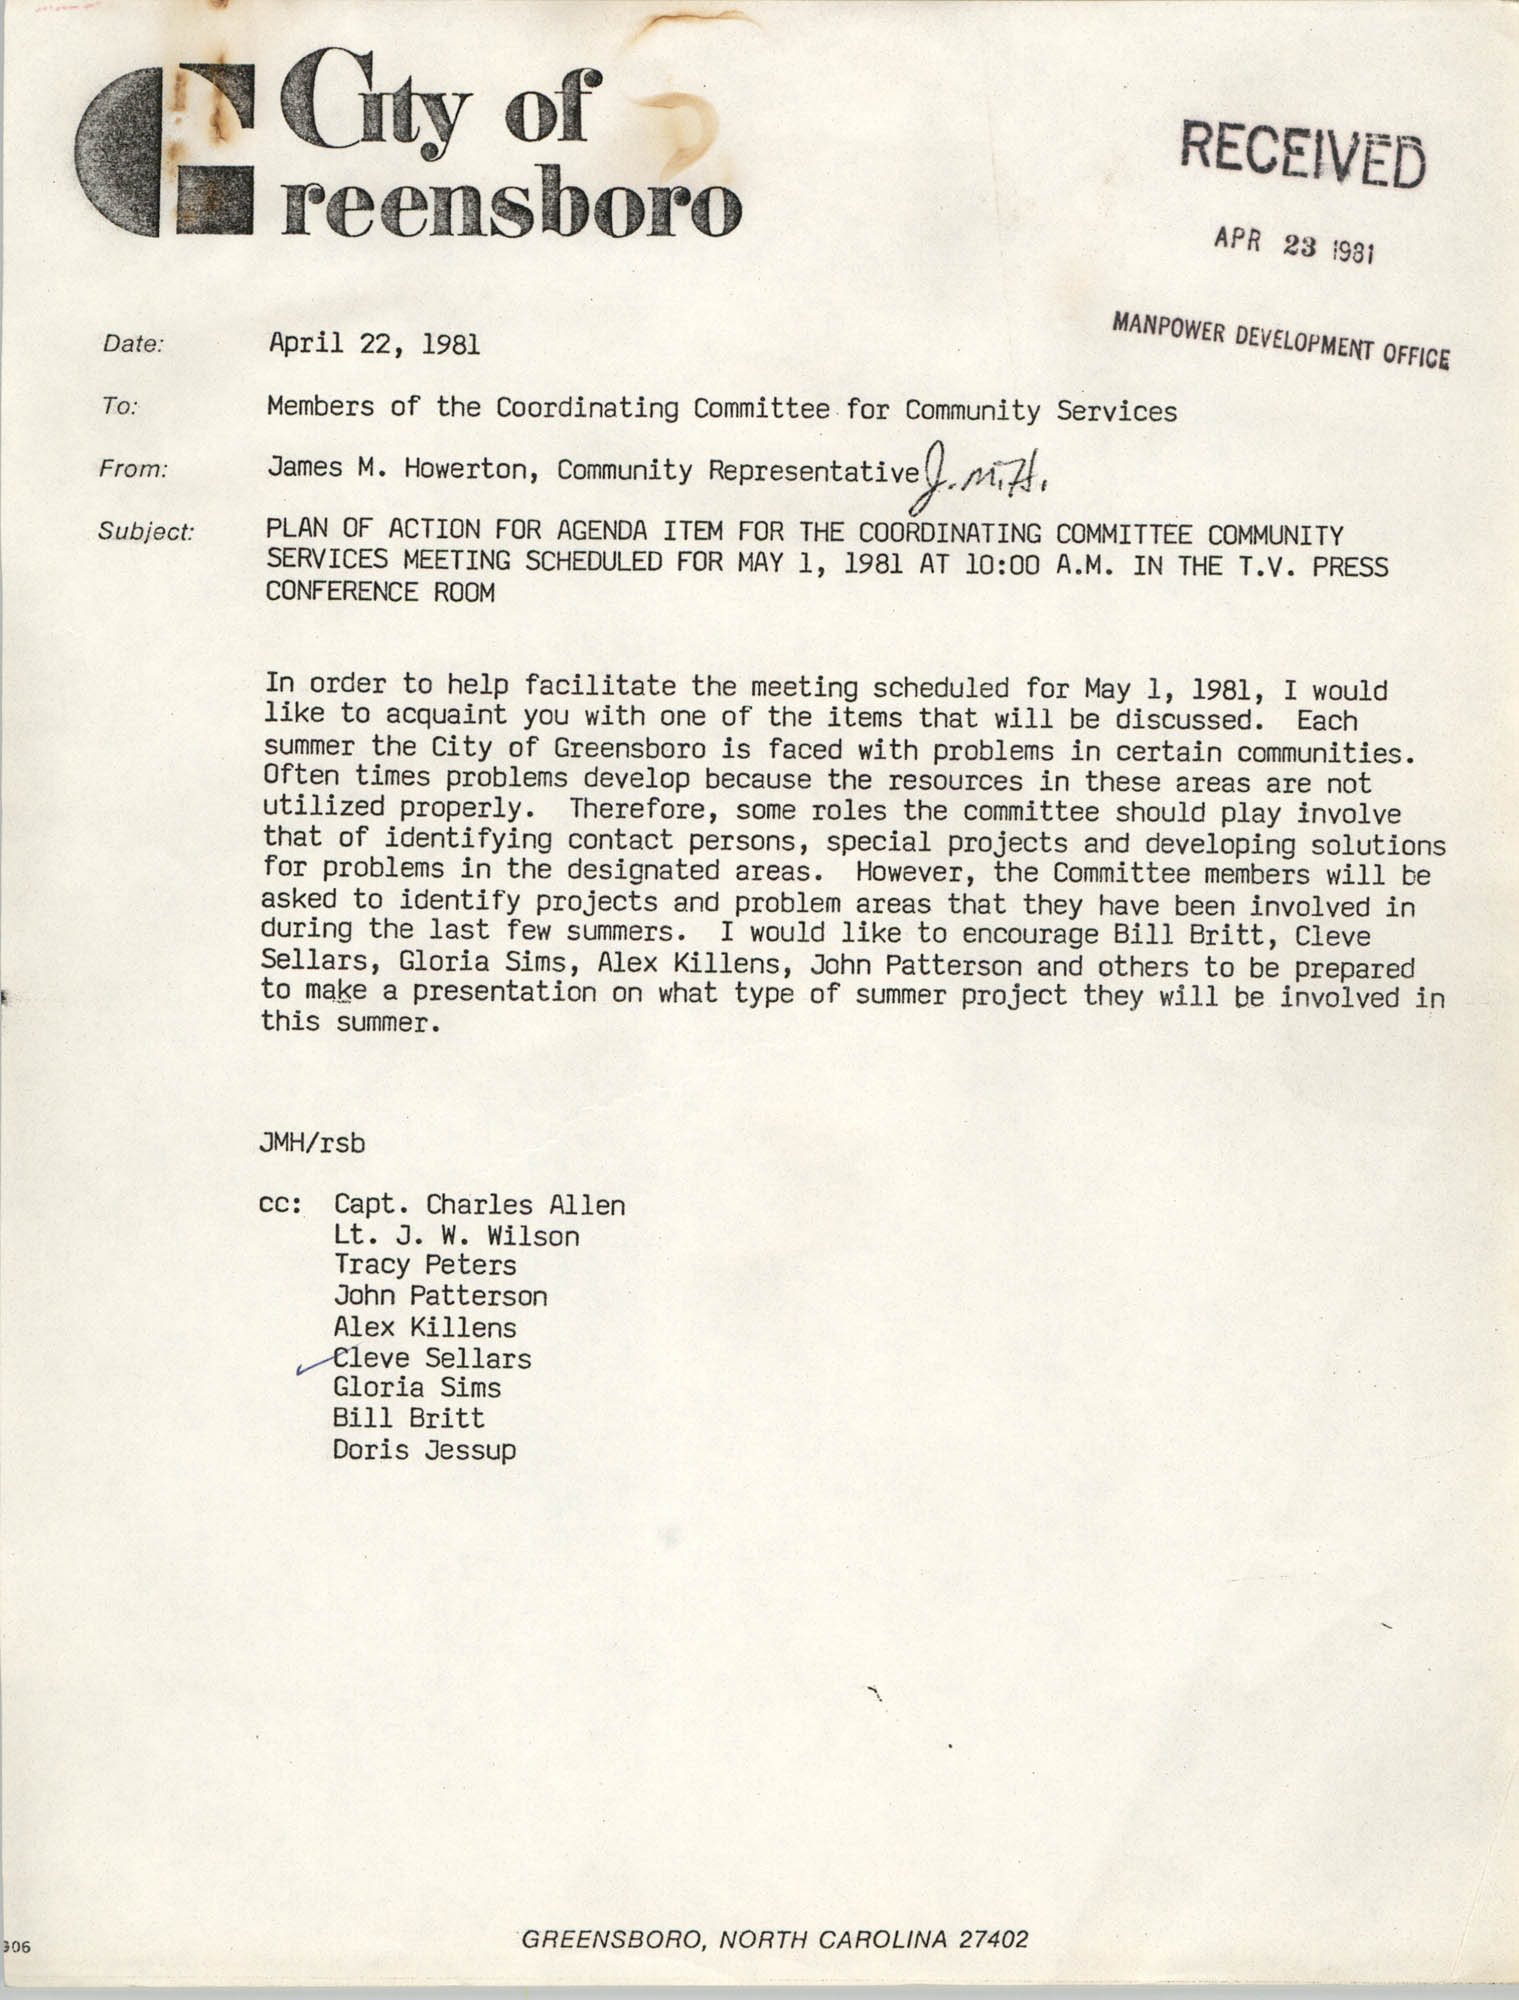 City of Greensboro Memorandum, July 7, 1981